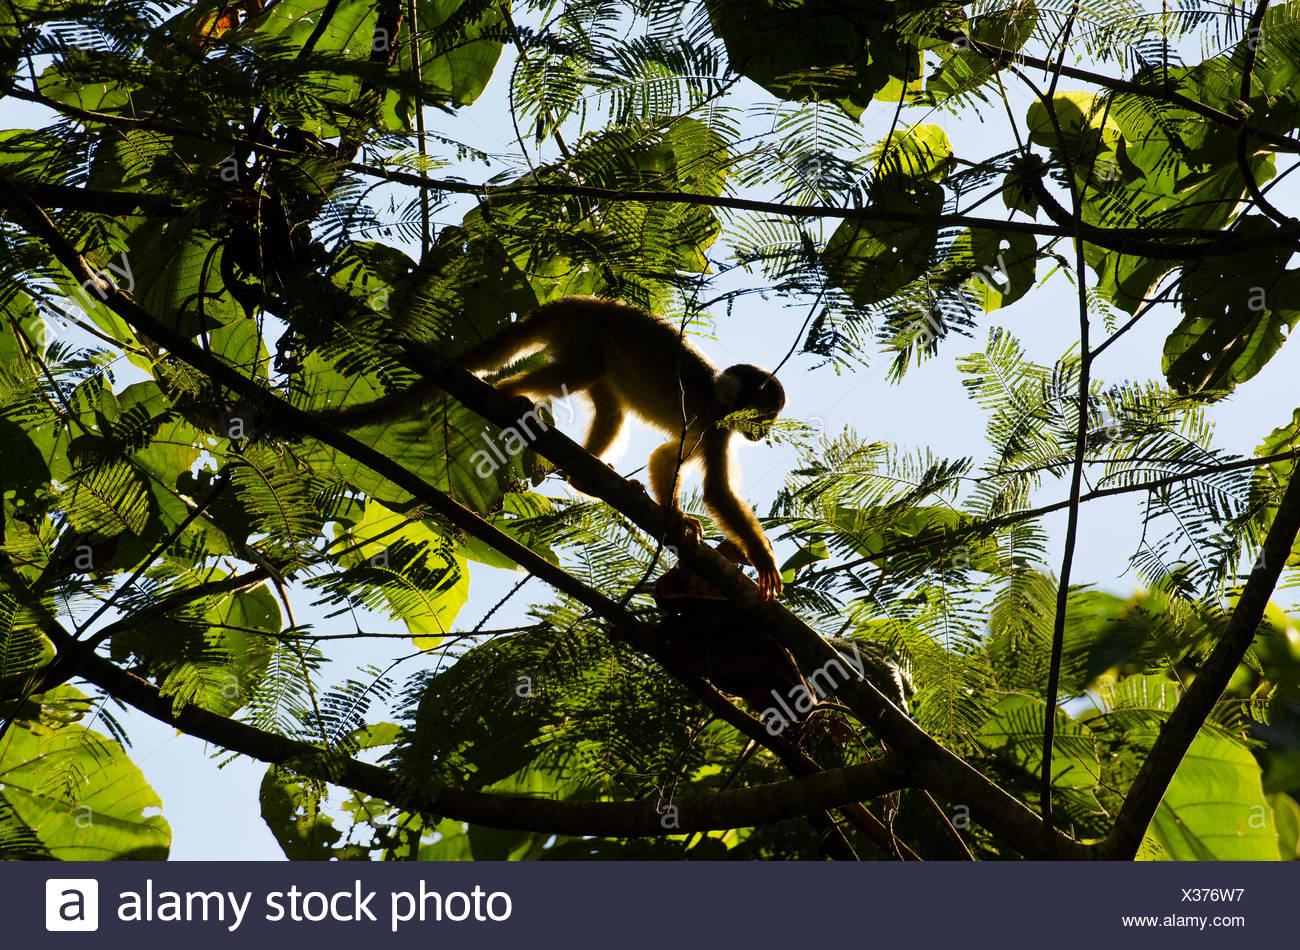 A squirrel monkey, Saimiri scireus, climbing in a tree top. - Stock Image